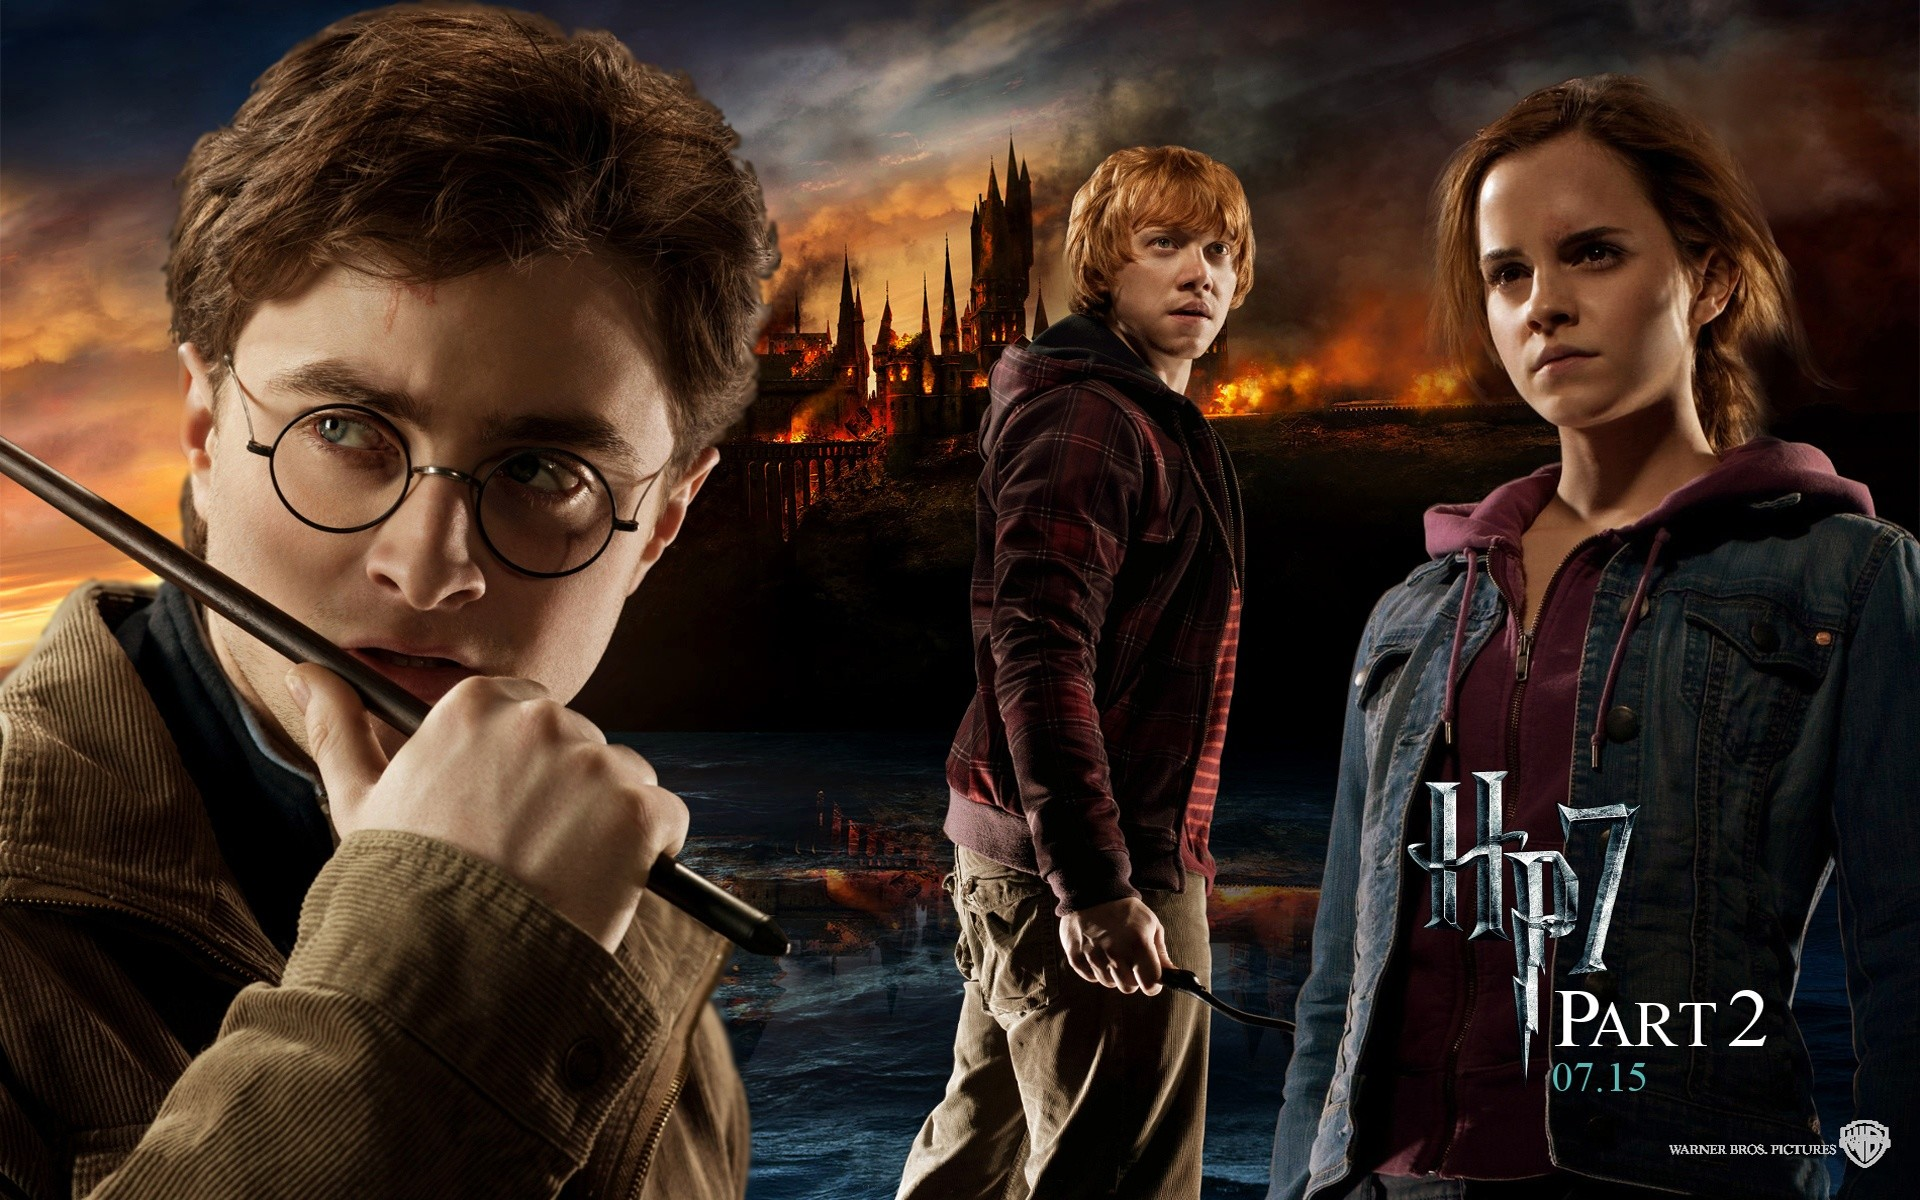 36 Harry Potter and the Deathly Hallows: Part 2 HD Wallpapers   Backgrounds  – Wallpaper Abyss